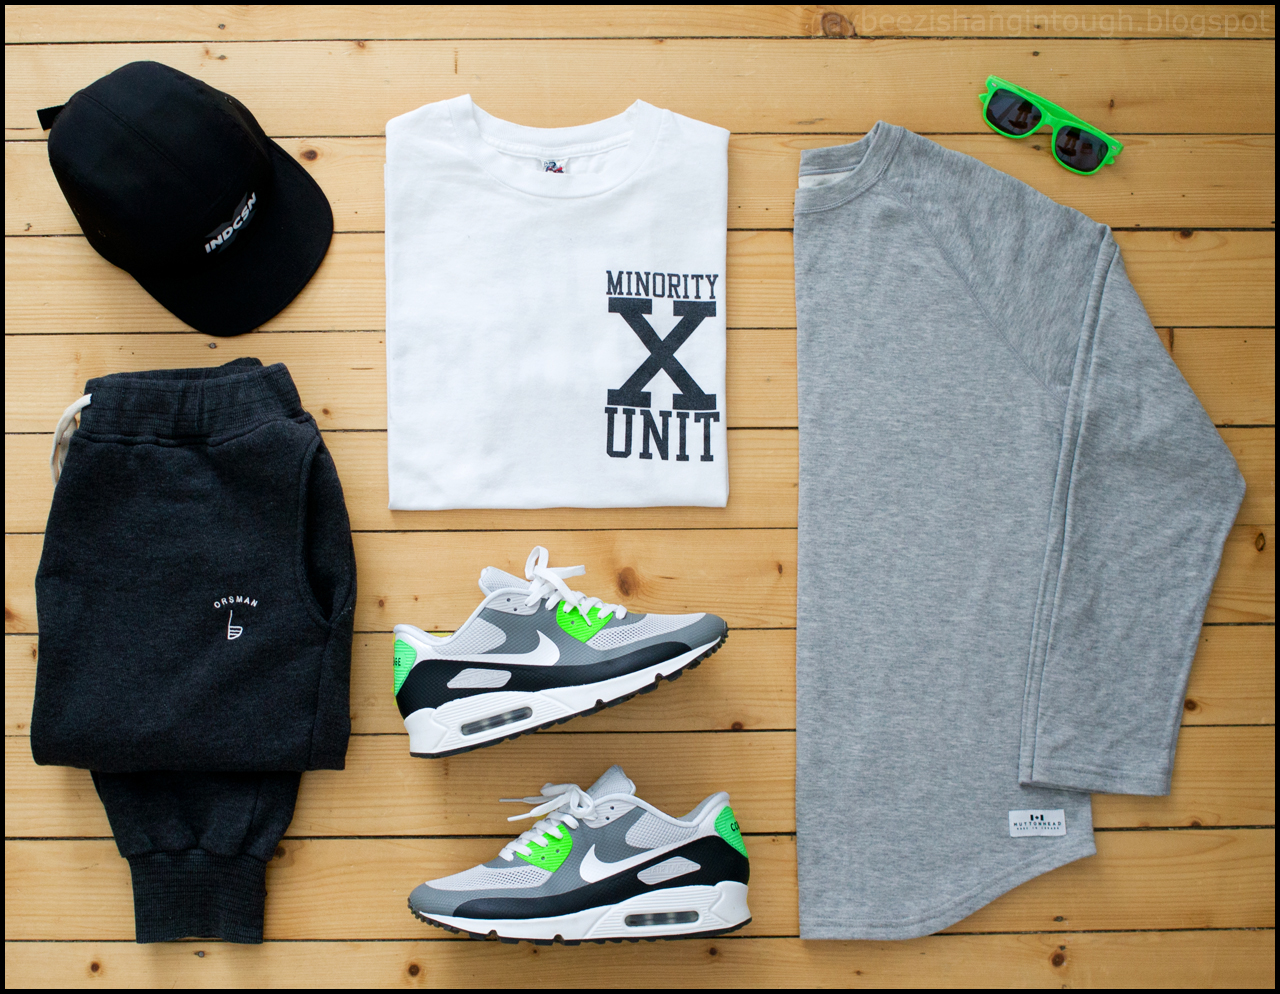 6a307b4491b two days ago  muttonhead longsleeve. minority unit tee. orsman park jogger  pants. nike iD air max 90 hyperfuse. indcsn 5 panel hat. chocolate shades.